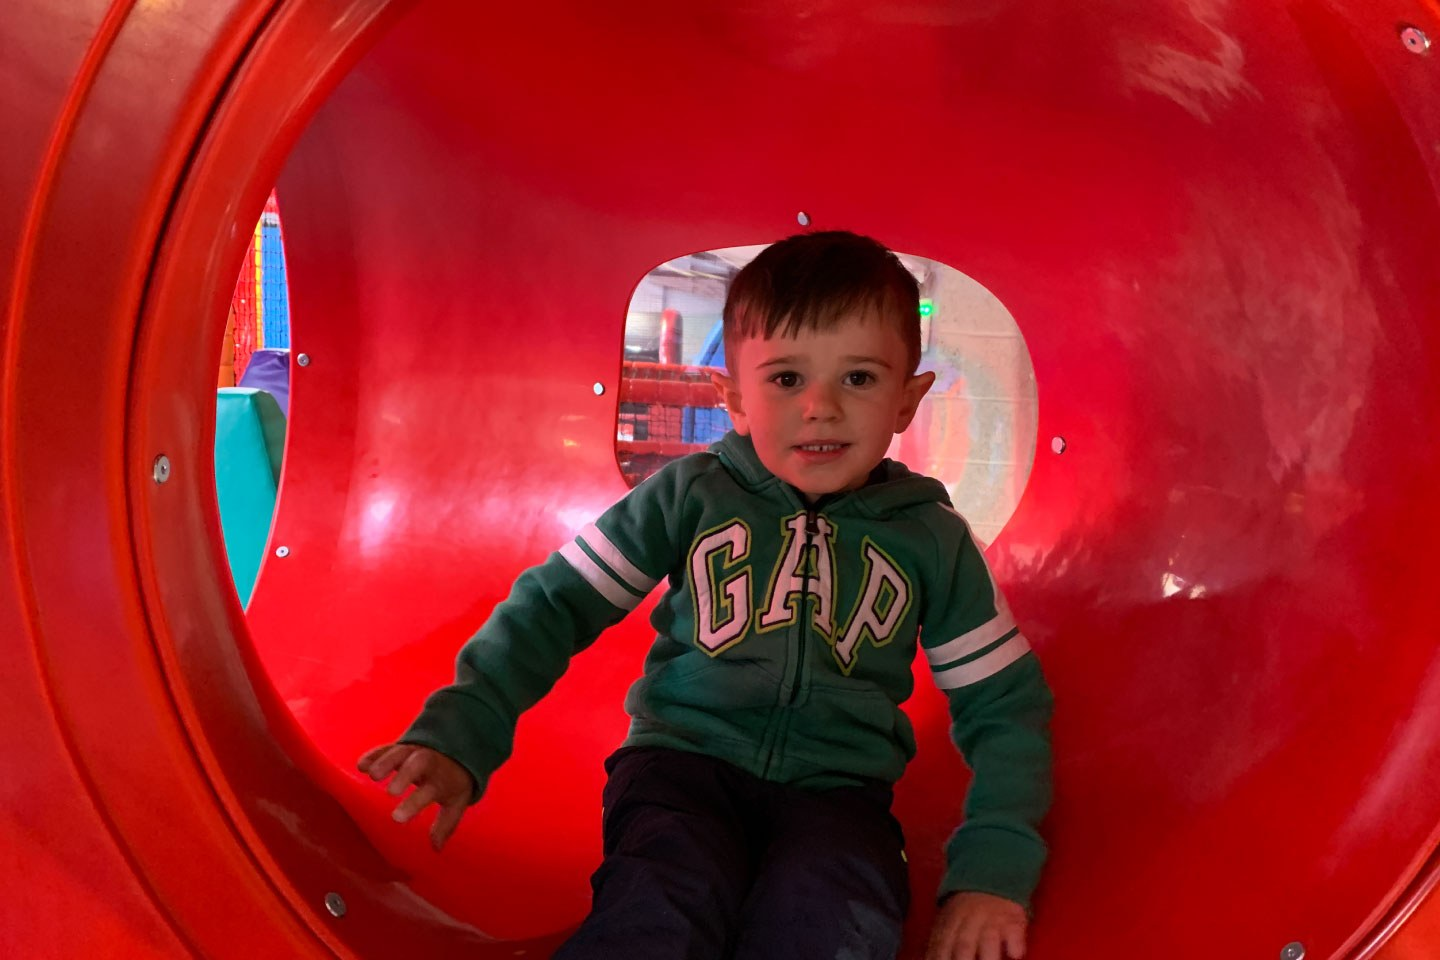 Little Boy Sits in the Crawl Tube at Airtastic Soft Play Centre in Bangor